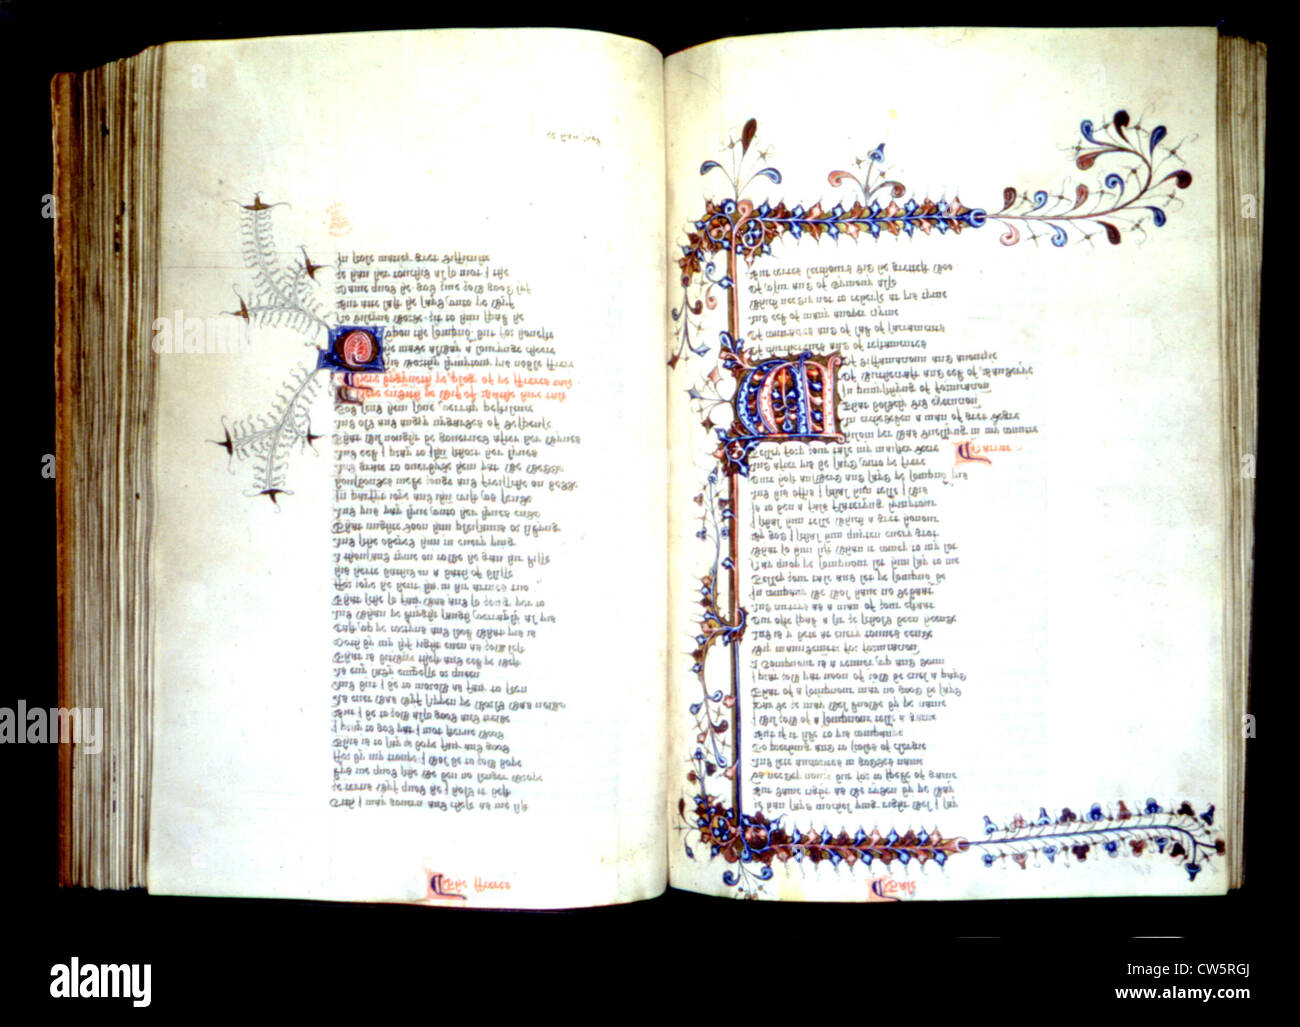 Geoffrey Chaucer, the Canterbury tales - Stock Image